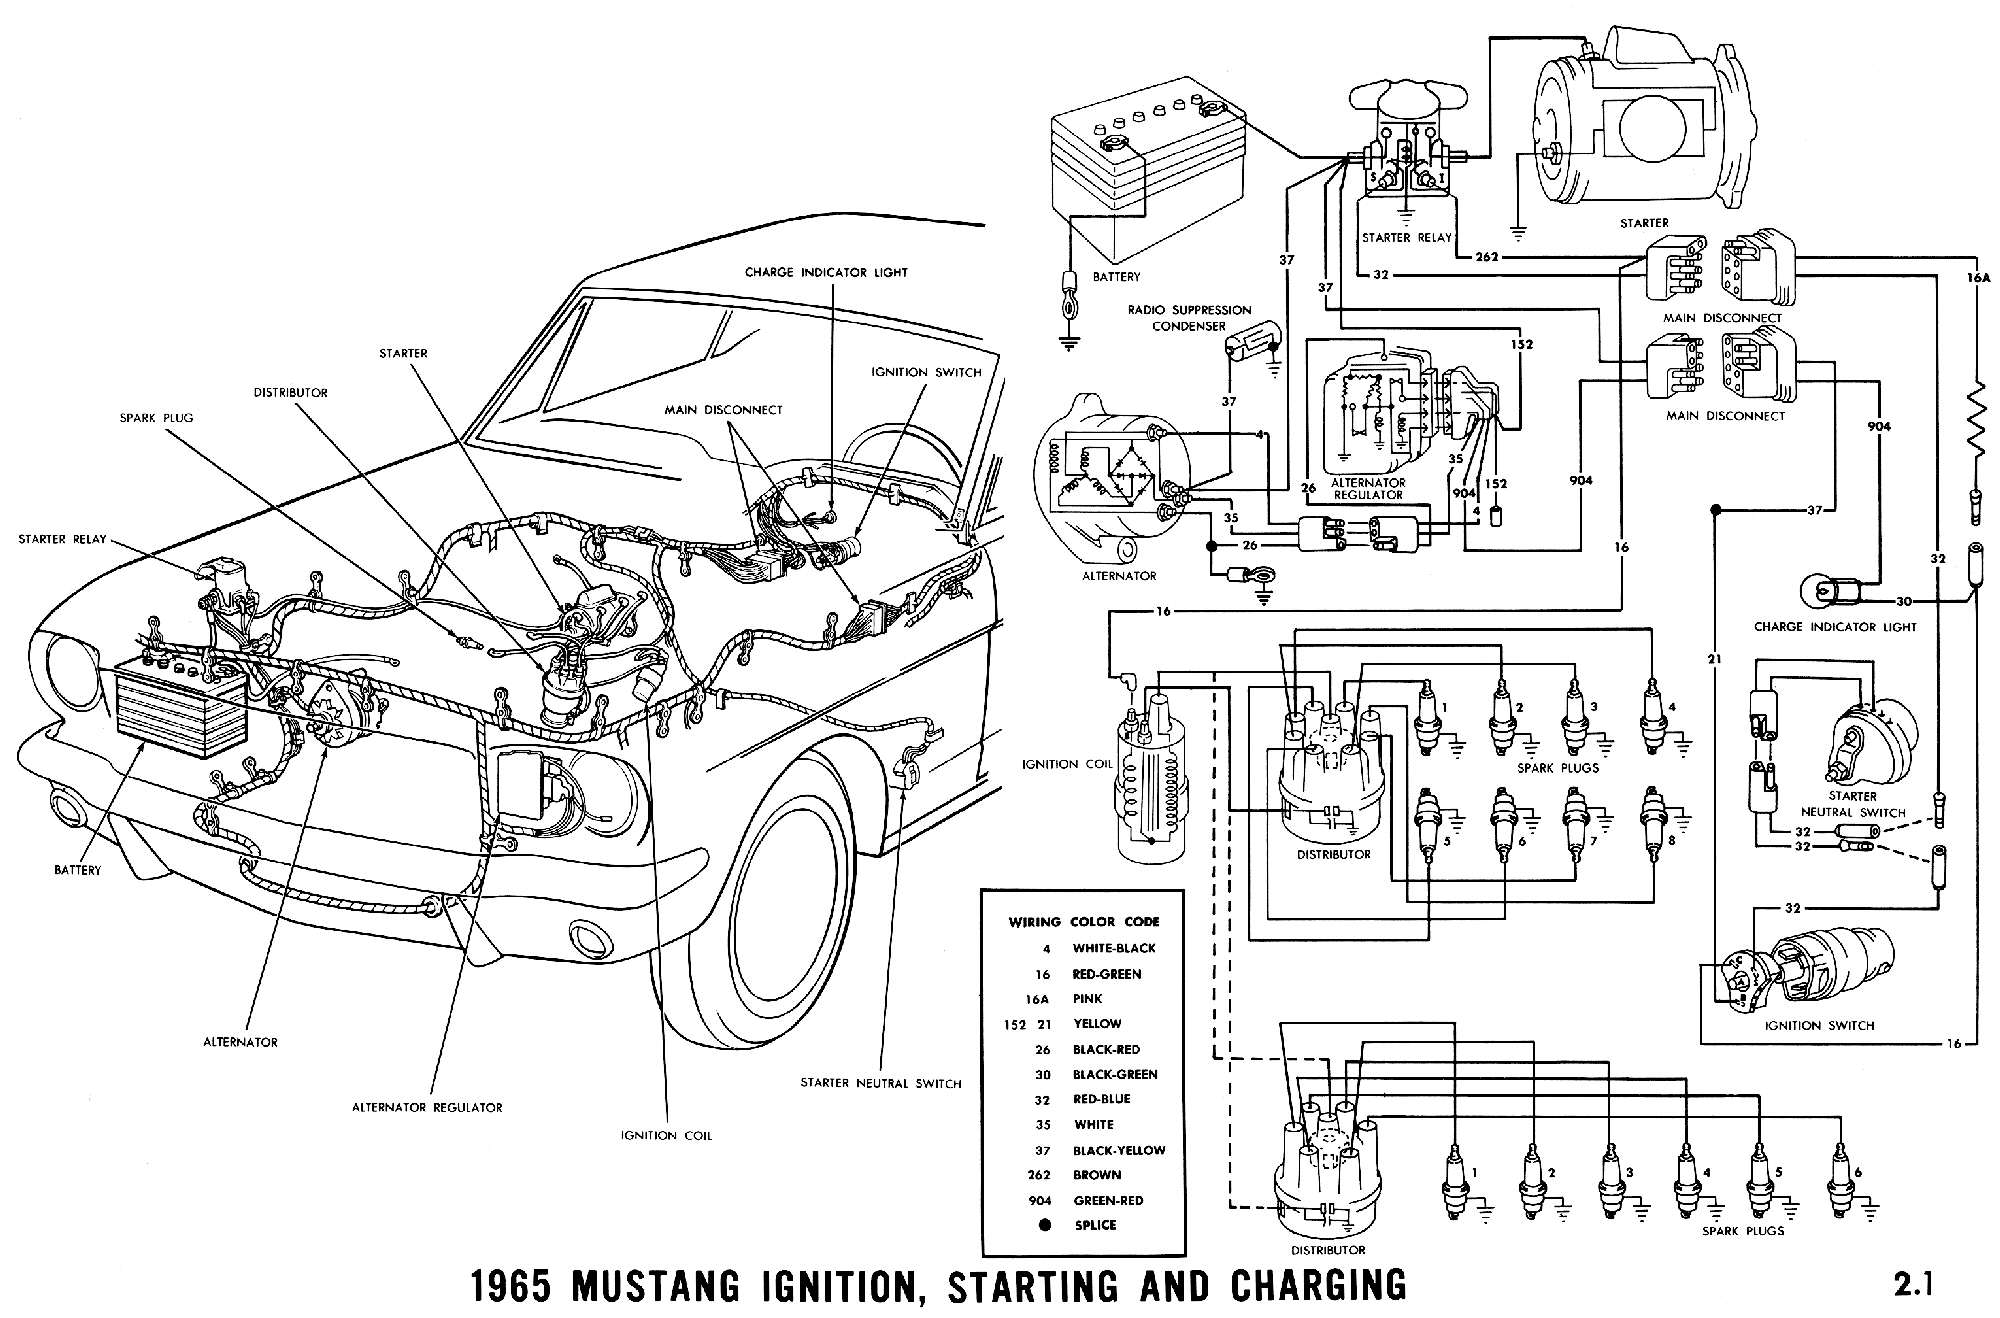 Ford Think Ignition Wiring Electrical Diagrams 68 Chevy C10 Harness 1965 Mustang Average Joe Restoration Starting